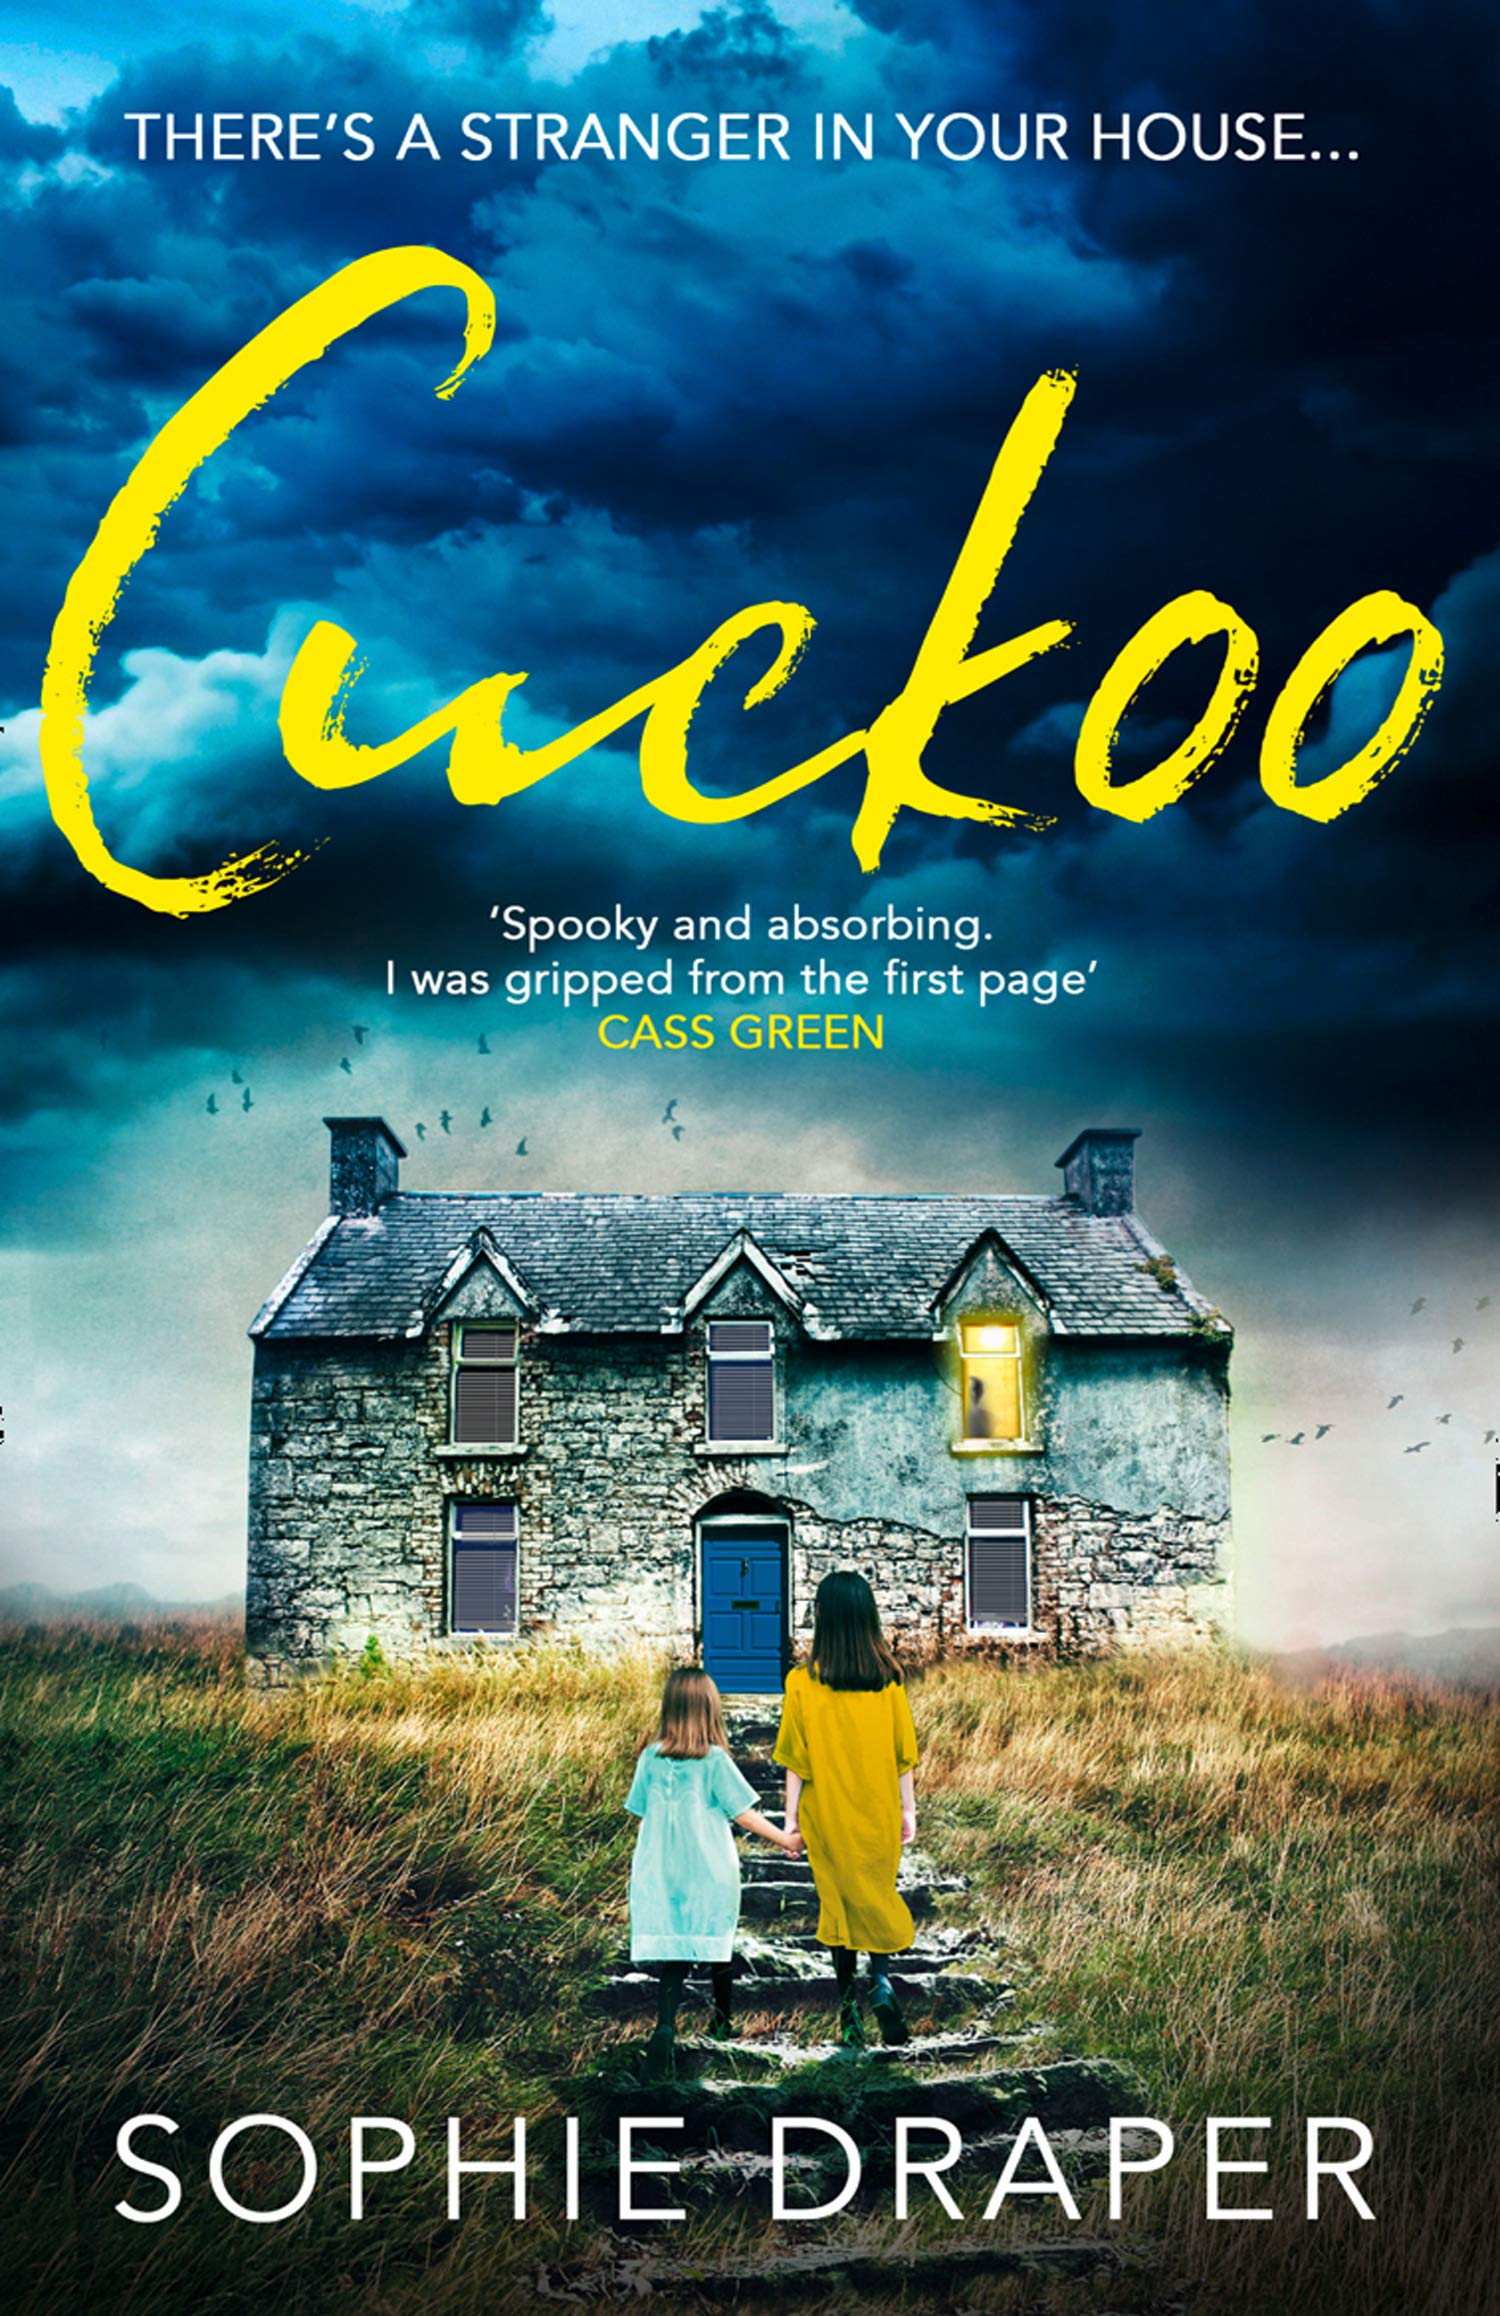 Cuckoo A Haunting New Psychological Thriller Perfect For Cold